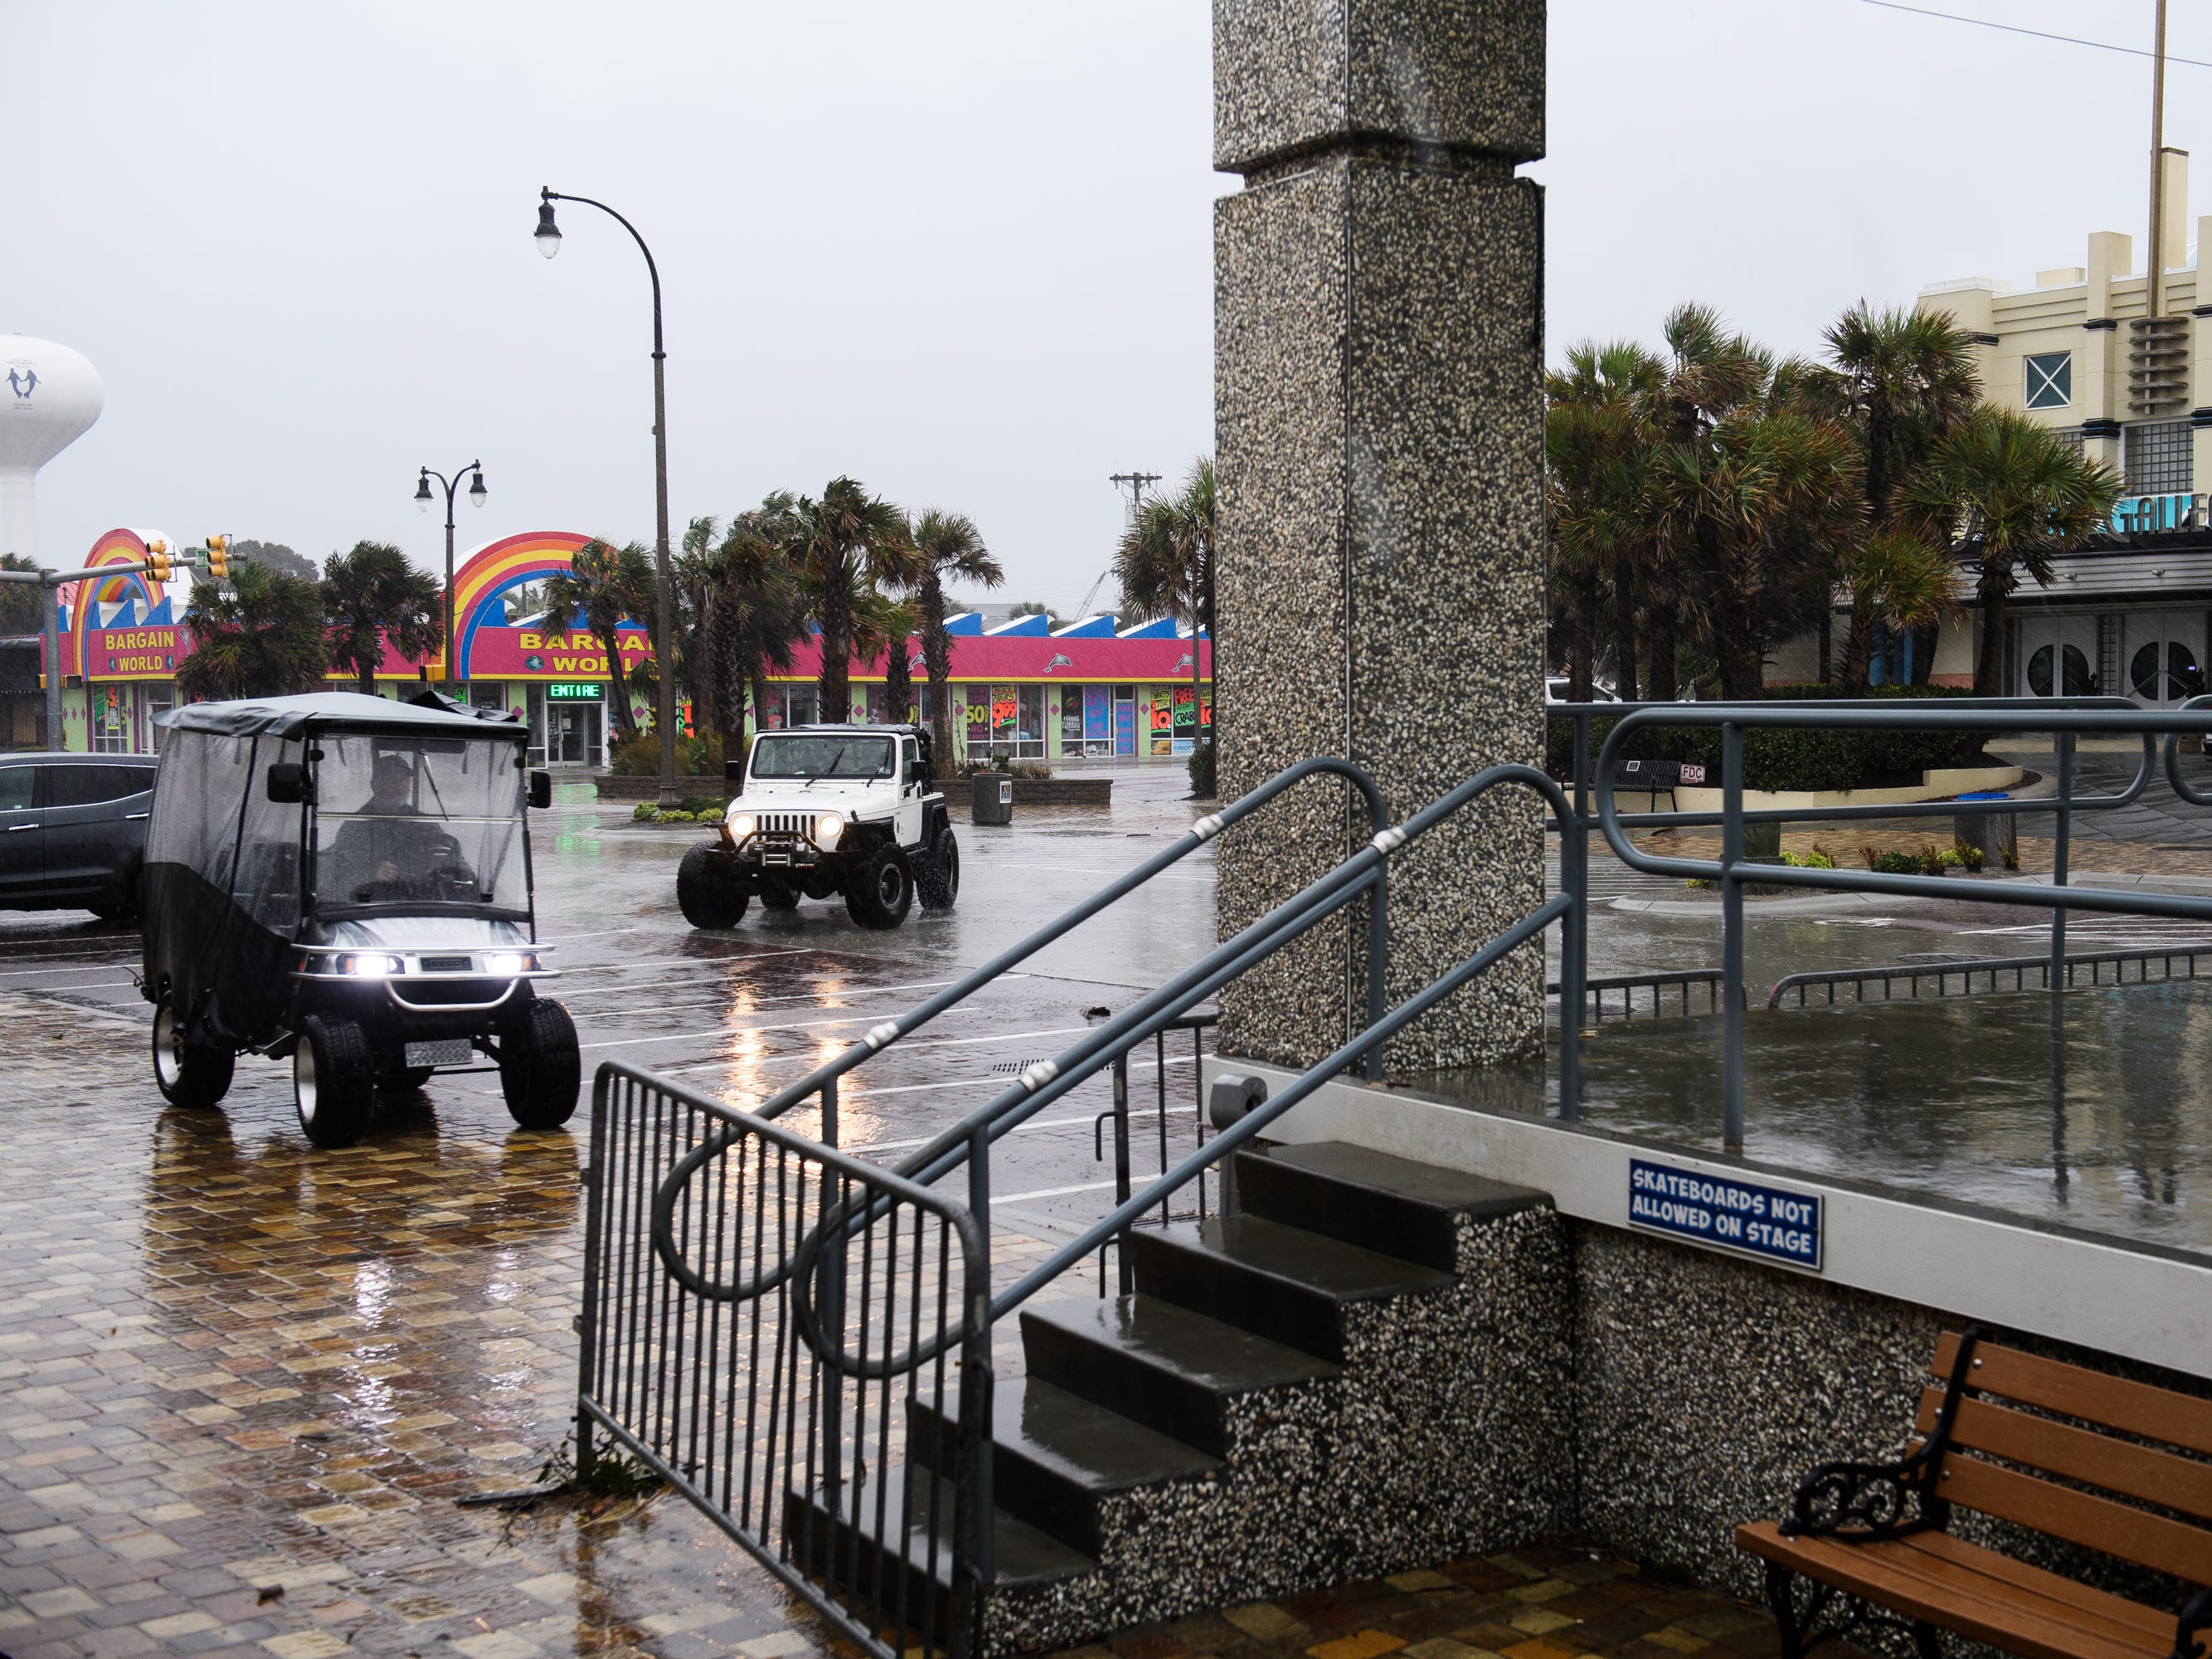 North Myrtle Beach residents check out storm conditions at the beach as Hurricane Florence inches towards South Carolina on Friday, Sept. 14, 2018.